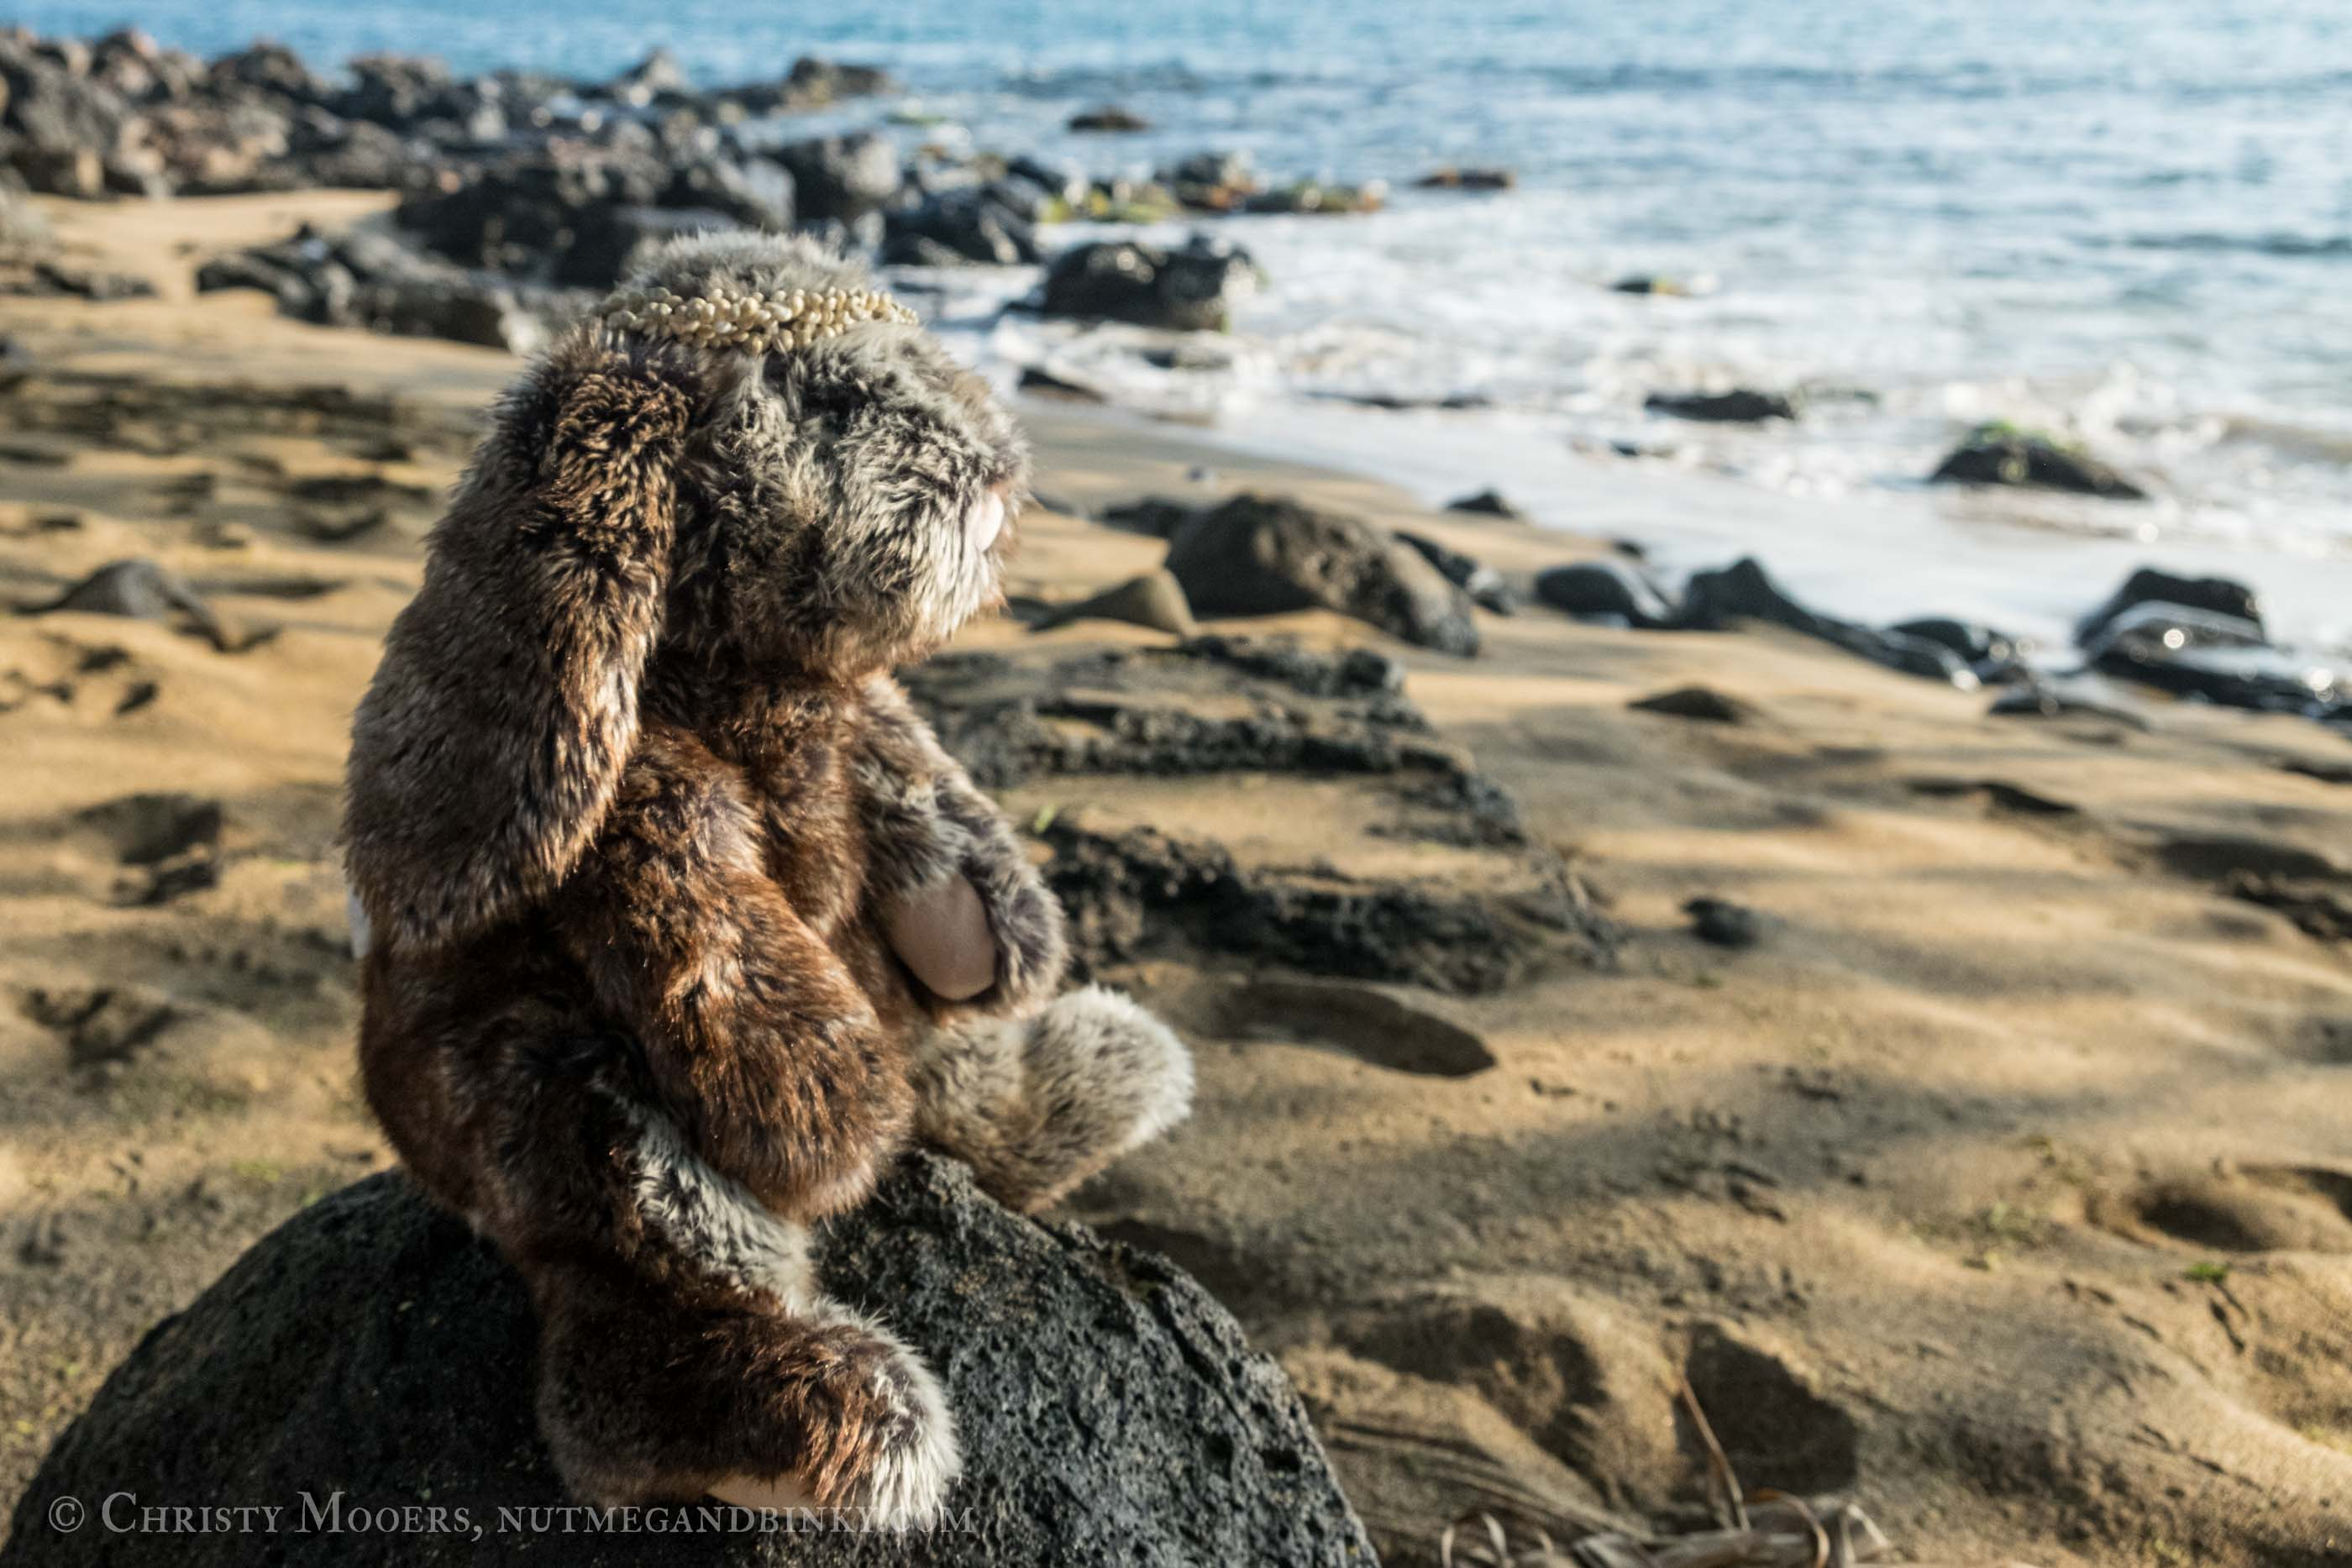 Stuffed animal bunny sitting on a rocky and gazing out at the ocean